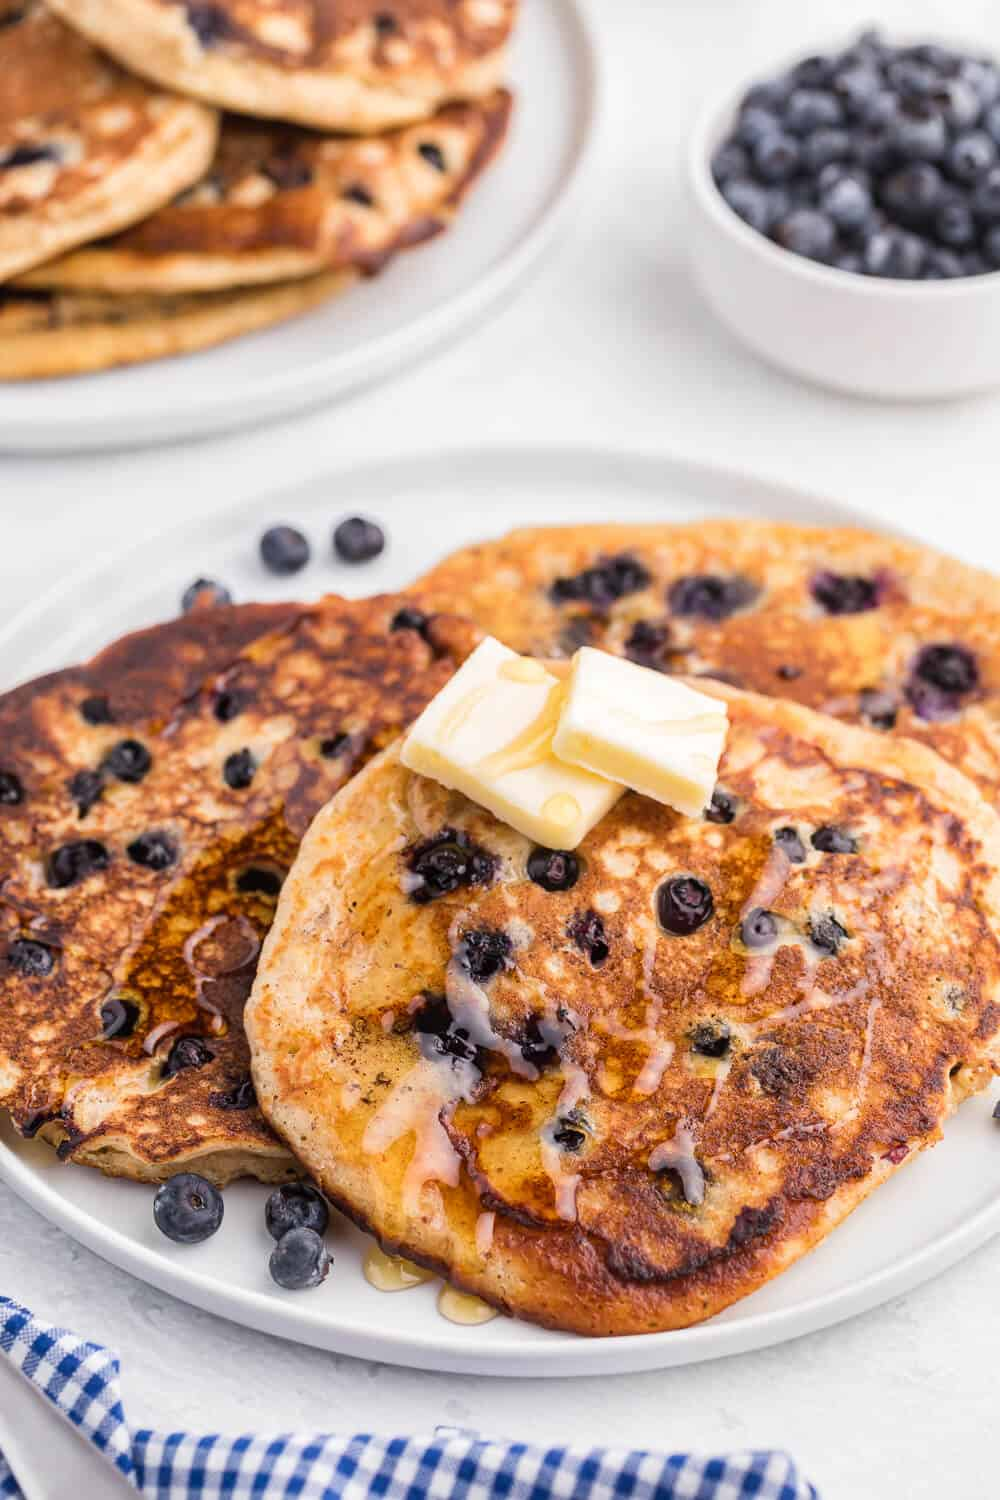 Whole Wheat Blueberry Pancakes - Blueberries are a wonder food, packed with fibre and antioxidants. Mixed into a light and fluffy whole wheat batter, these are a great way to add some extra nutrition without sacrificing delicious flavour.